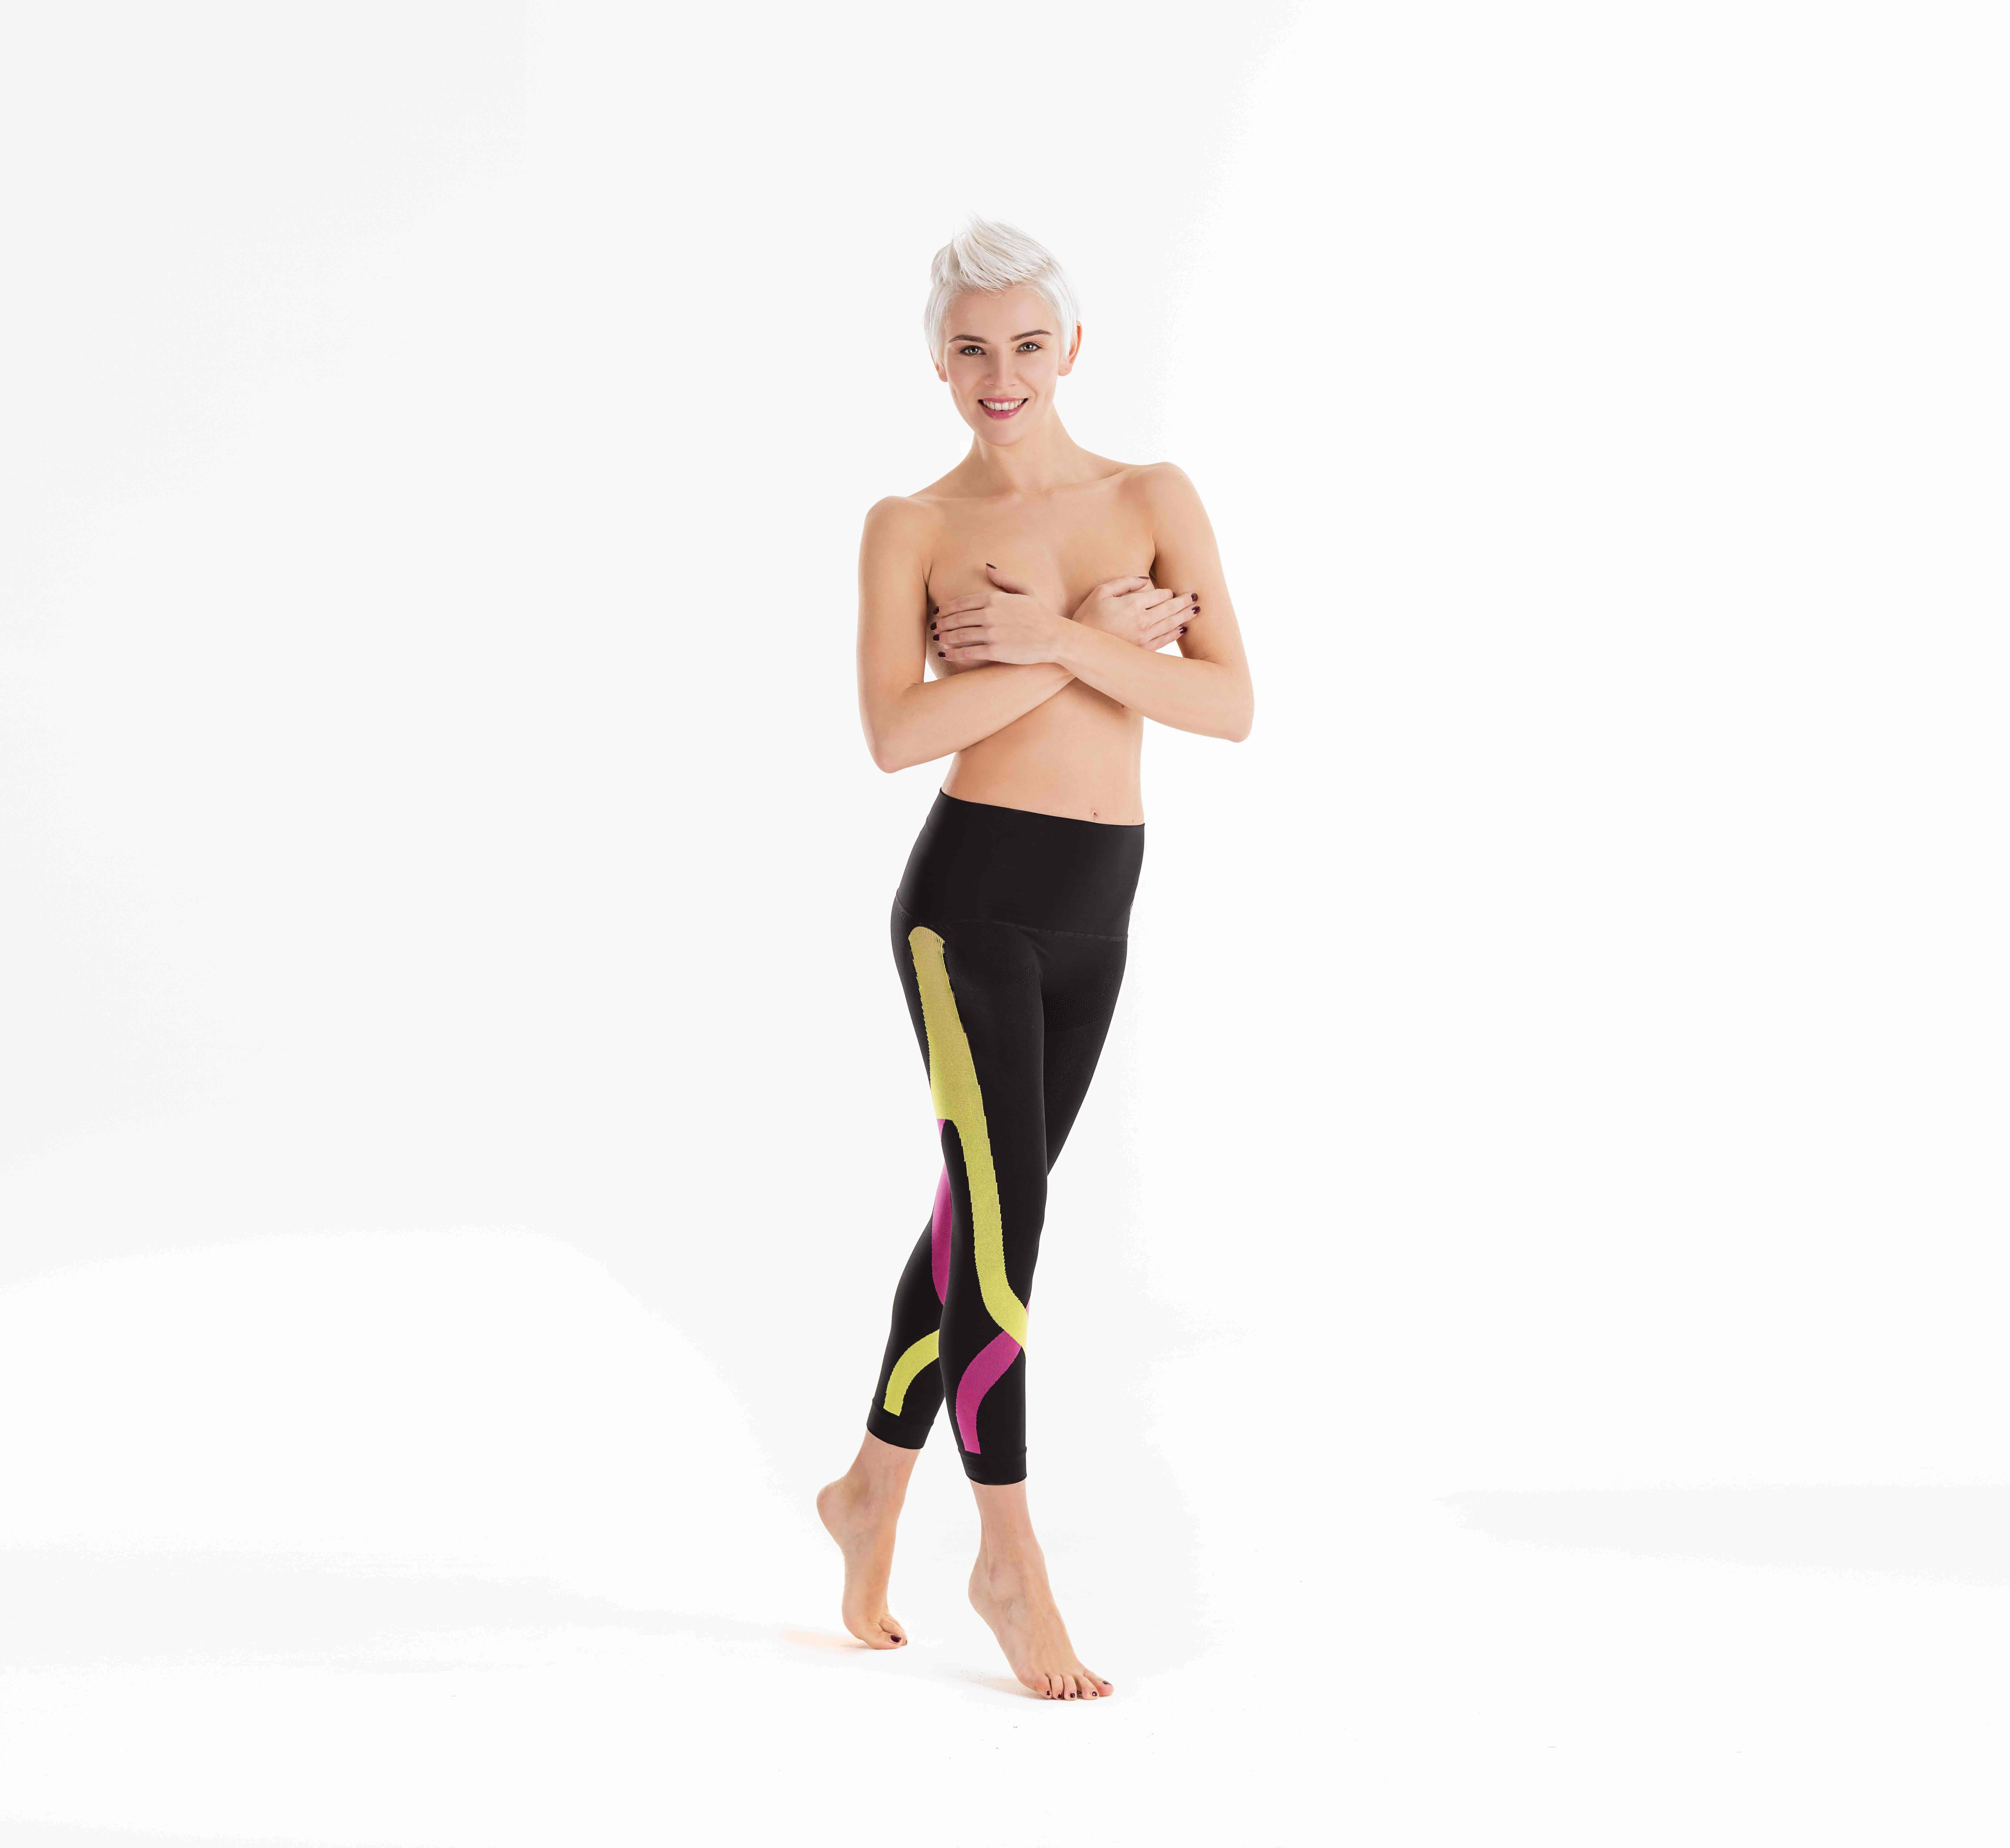 For the launch, Duelegs has created a collection made exclusively with Fulgar yarn and Lycra elastane fibre to provide maximum comfort and fit.